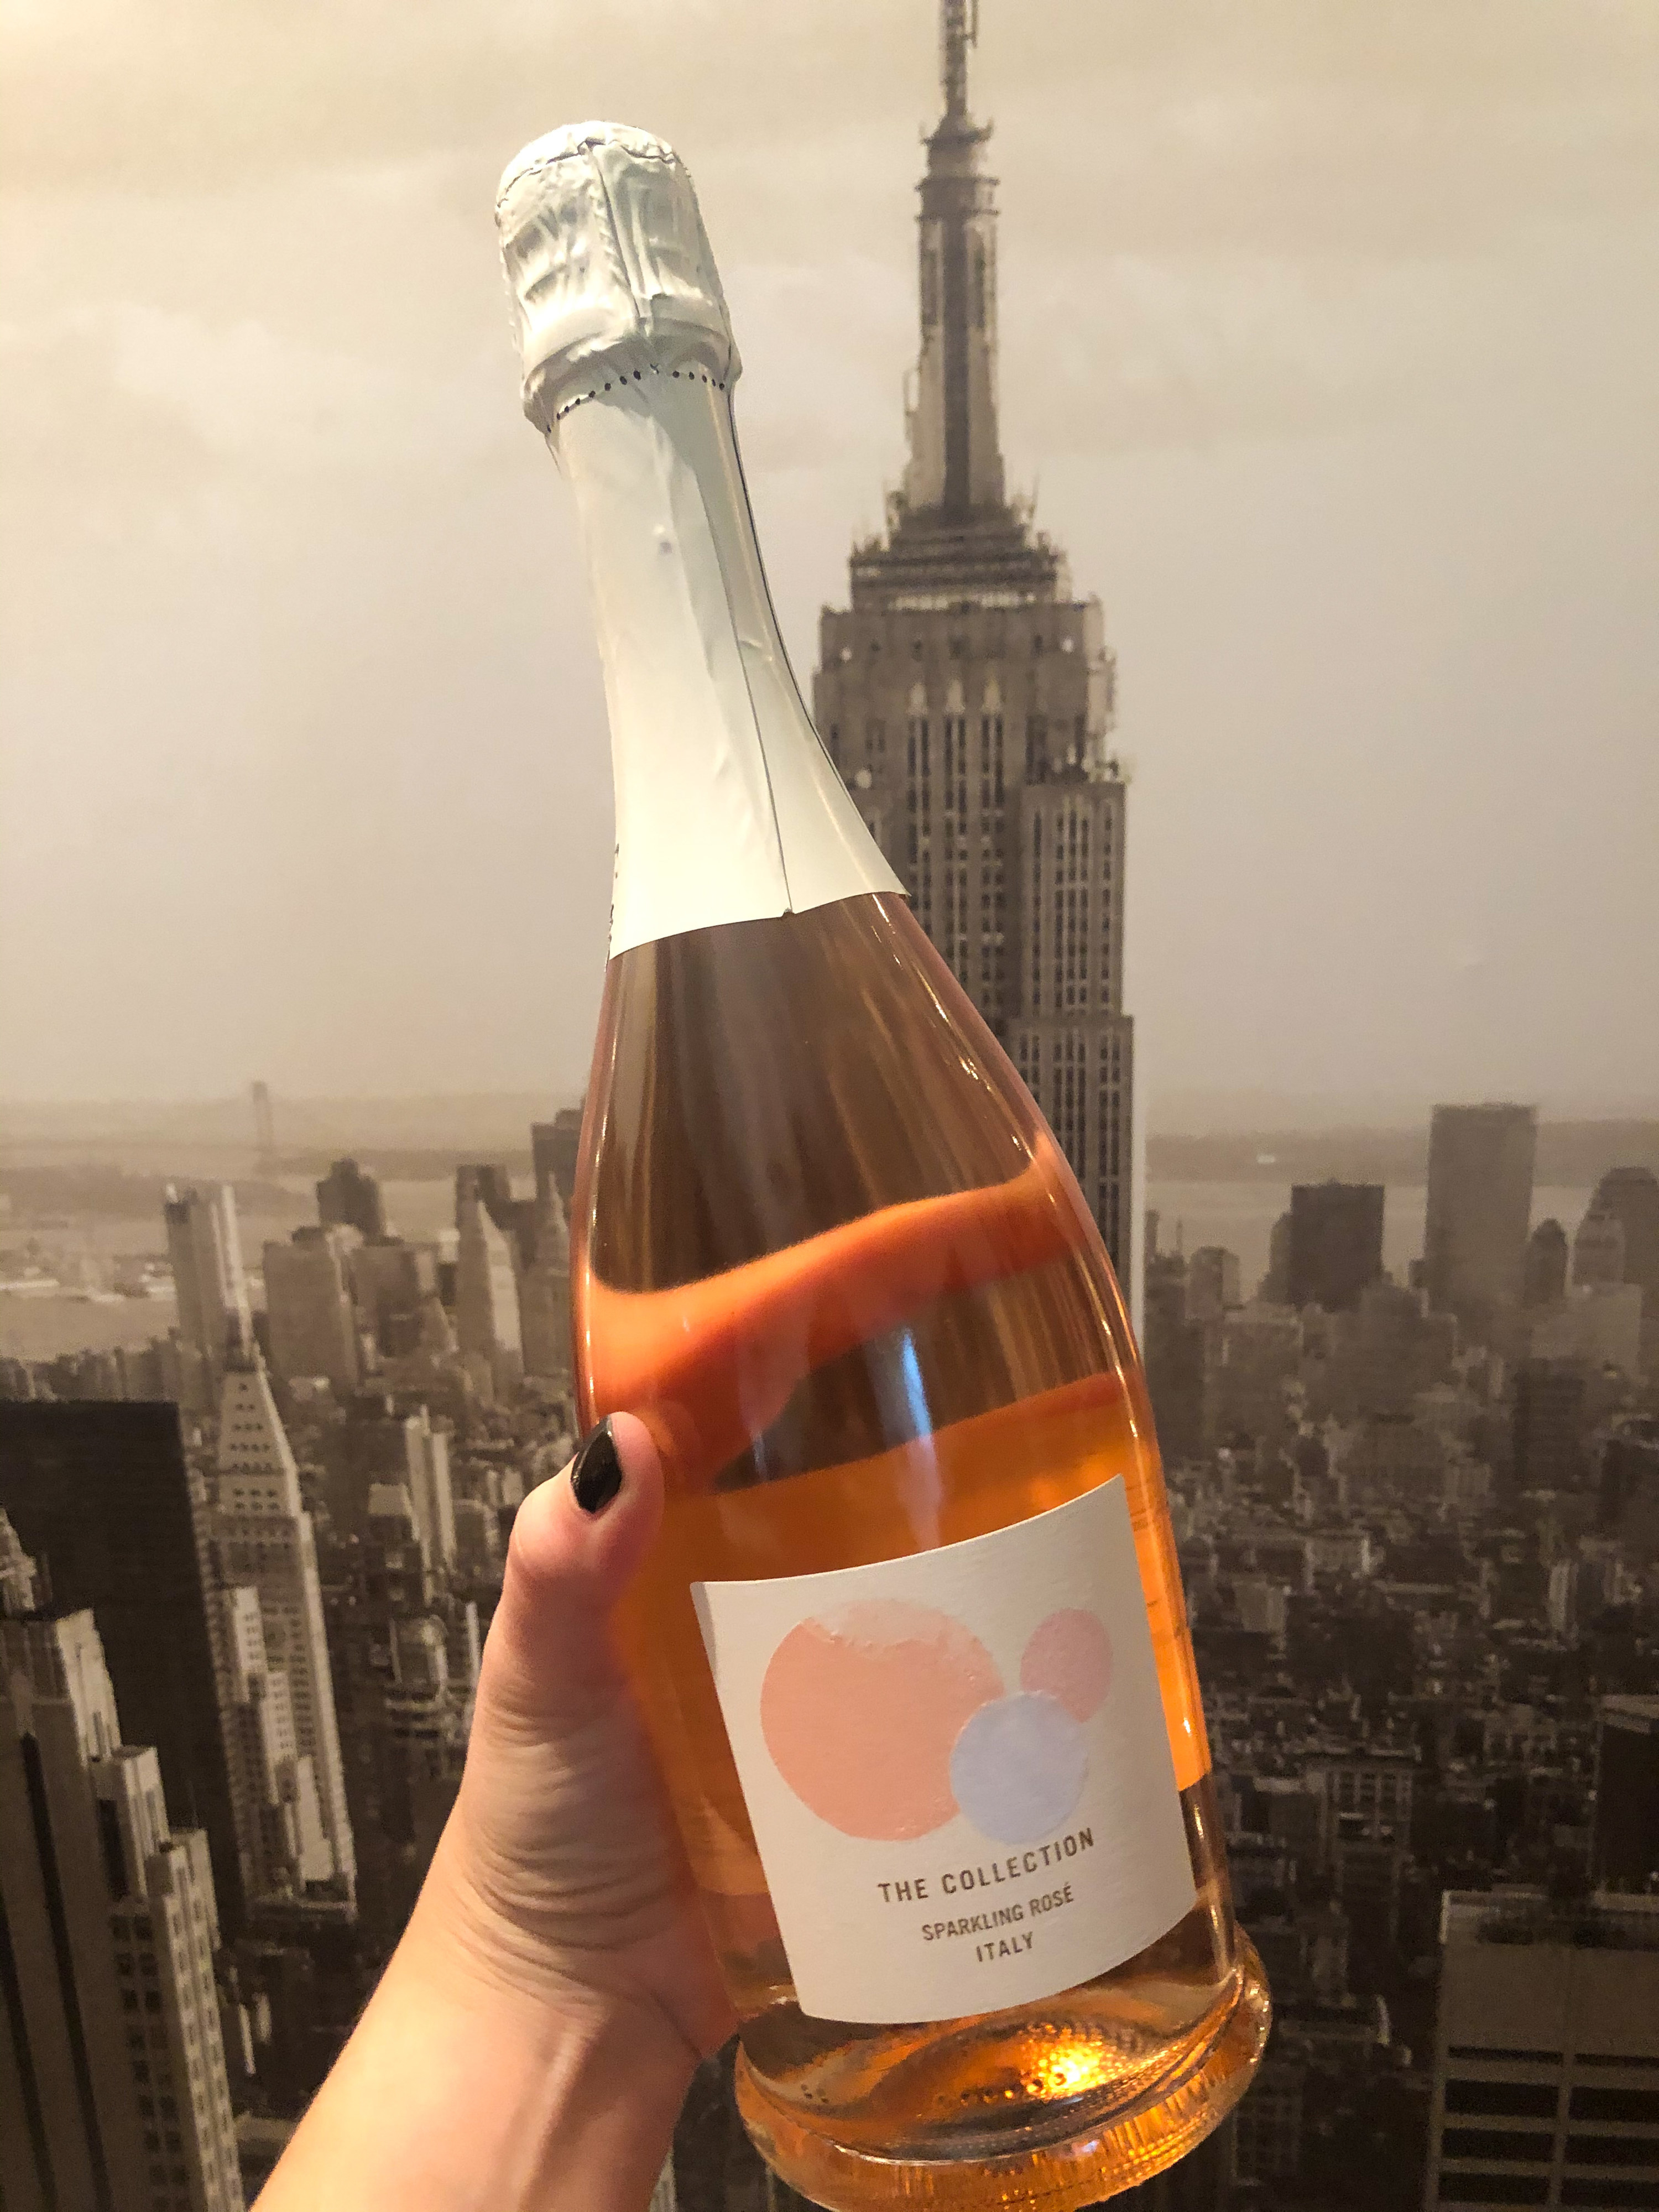 A hand holding a bottle of The Collection sparkling rosé in front of a portrait of NYC